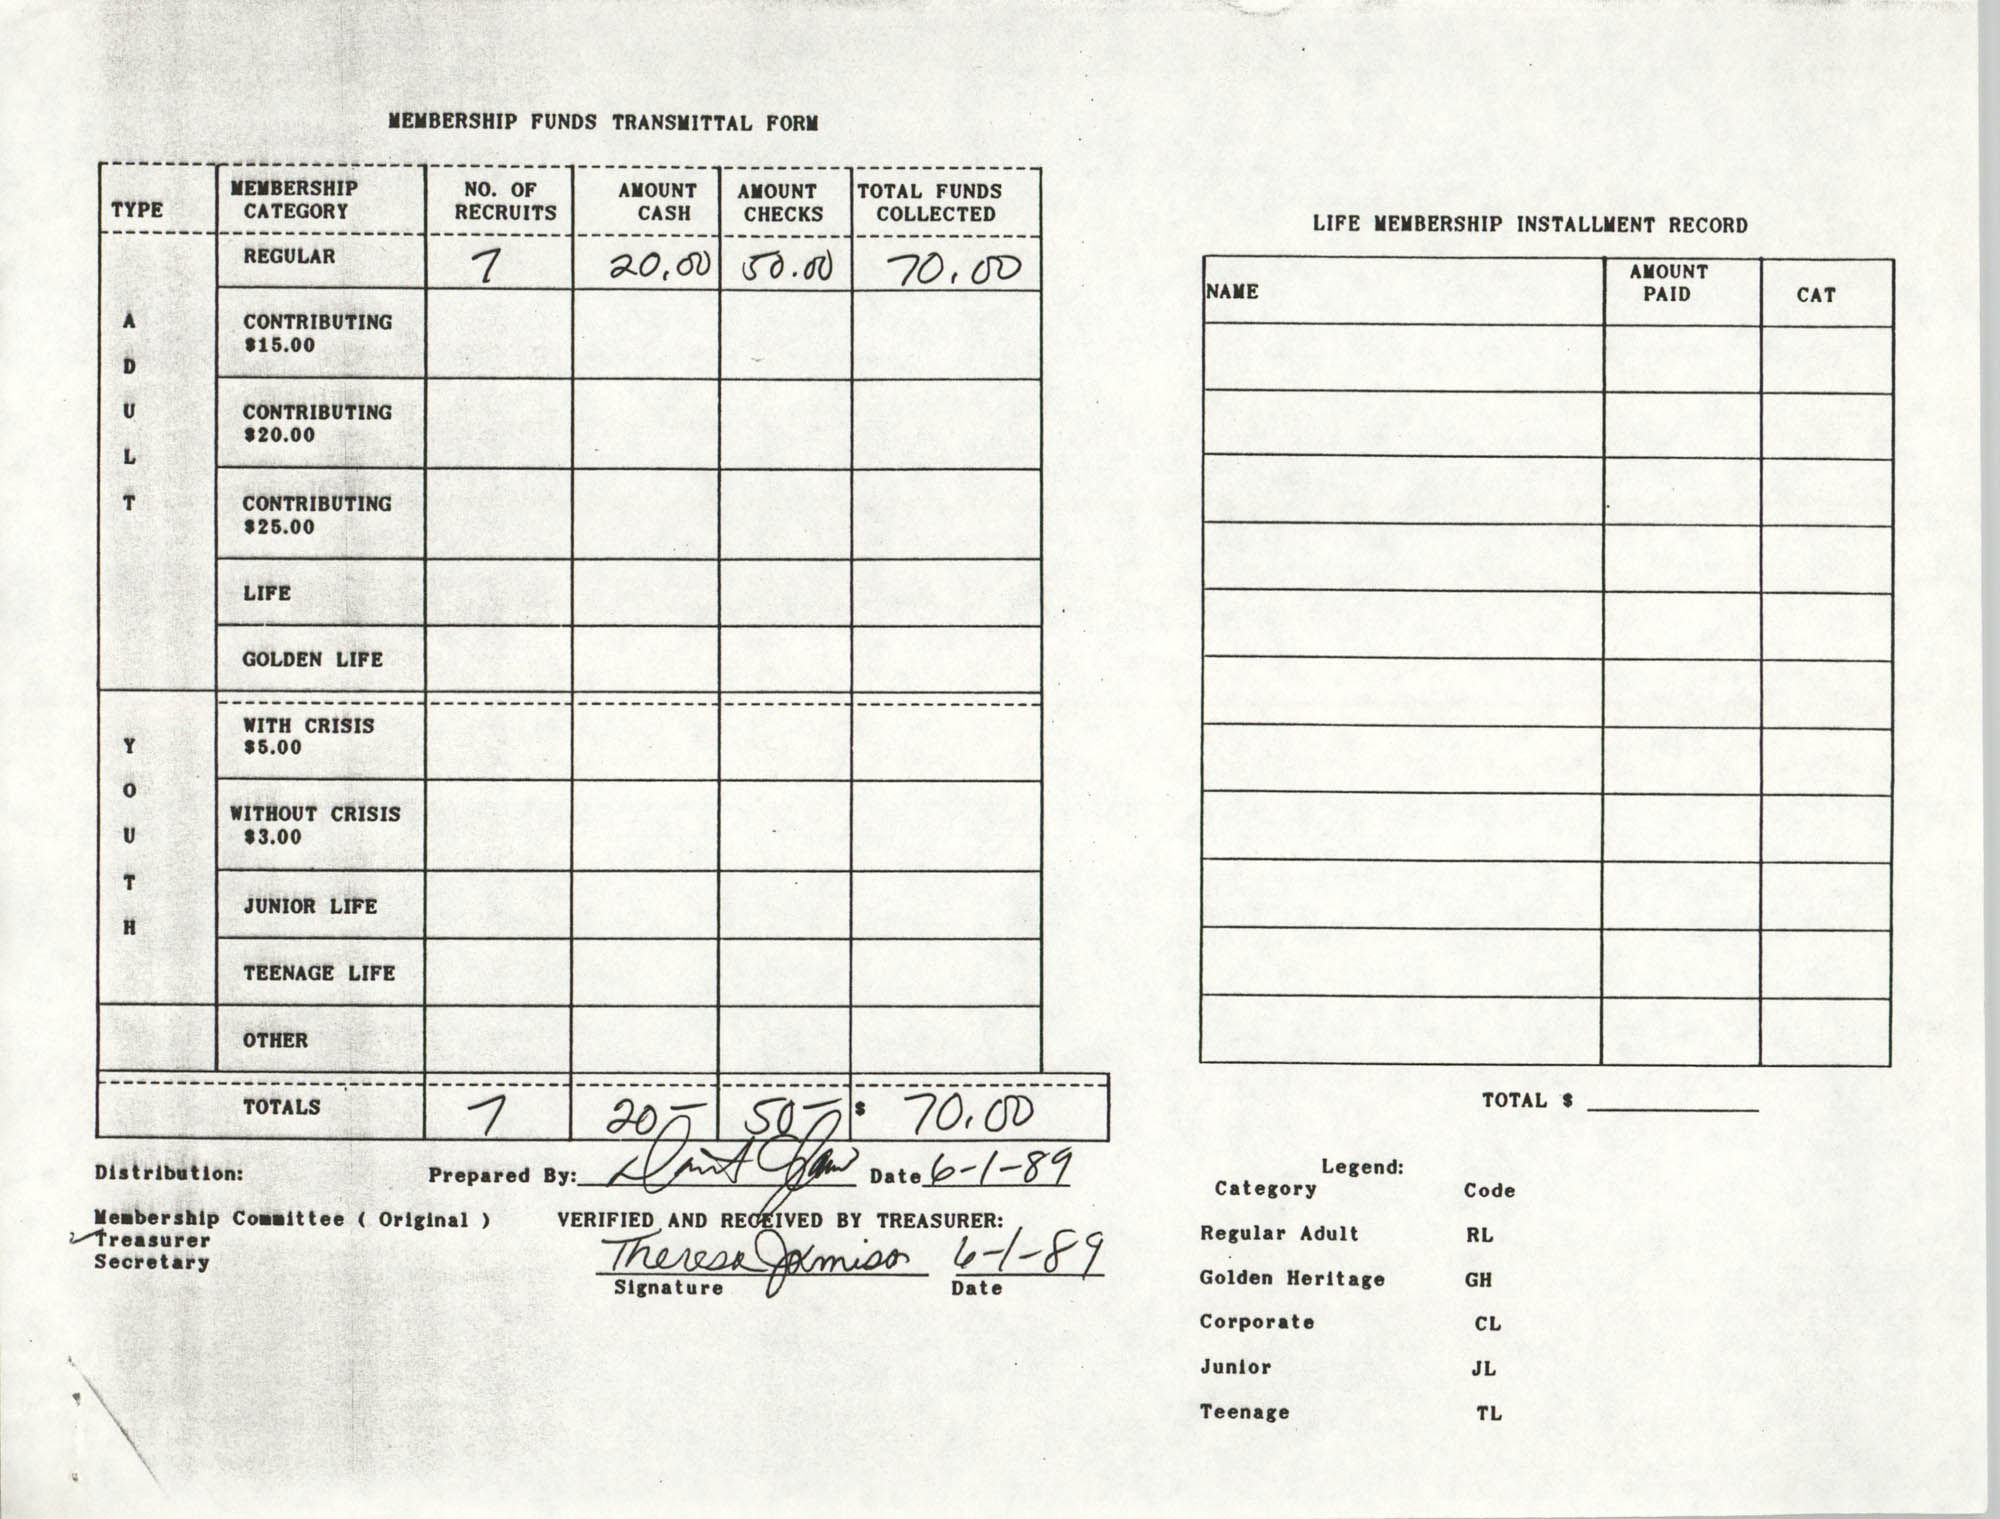 Charleston Branch of the NAACP Funds Transmittal Forms, June 1989, Page 1